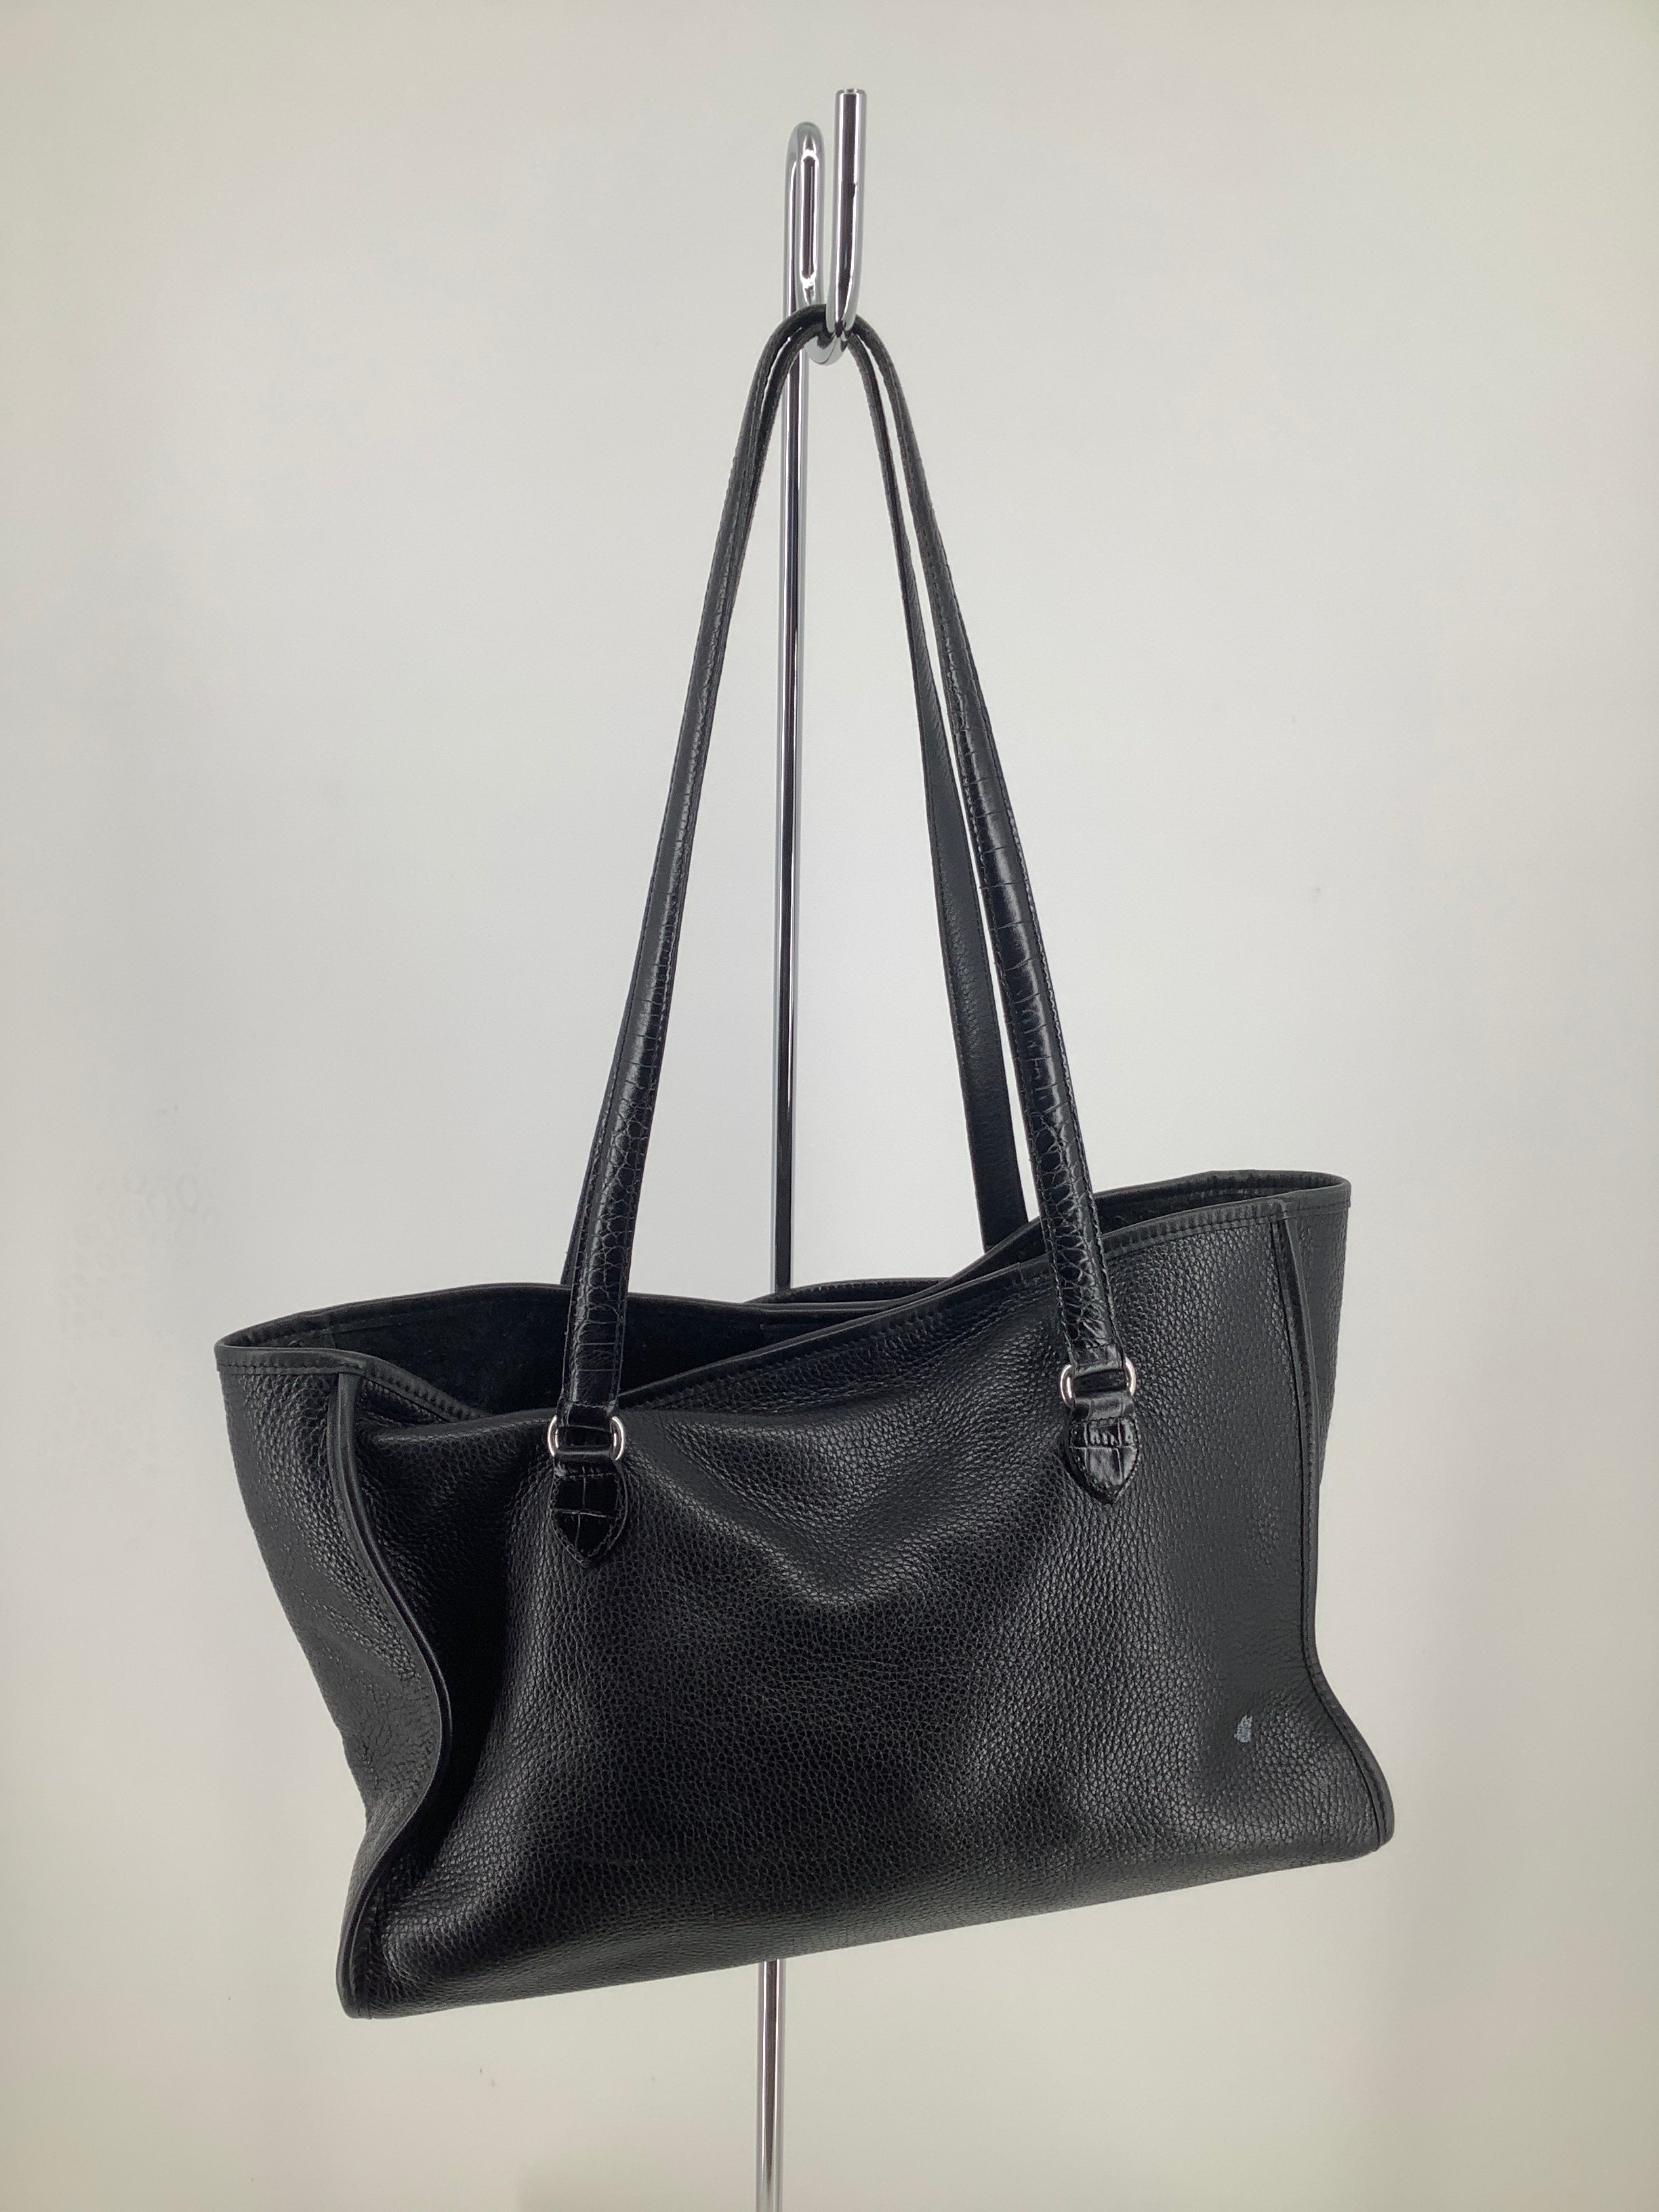 Photo #1 - brand: brighton , style: handbag designer, color: black , size: large , sku: 105-4940-6122